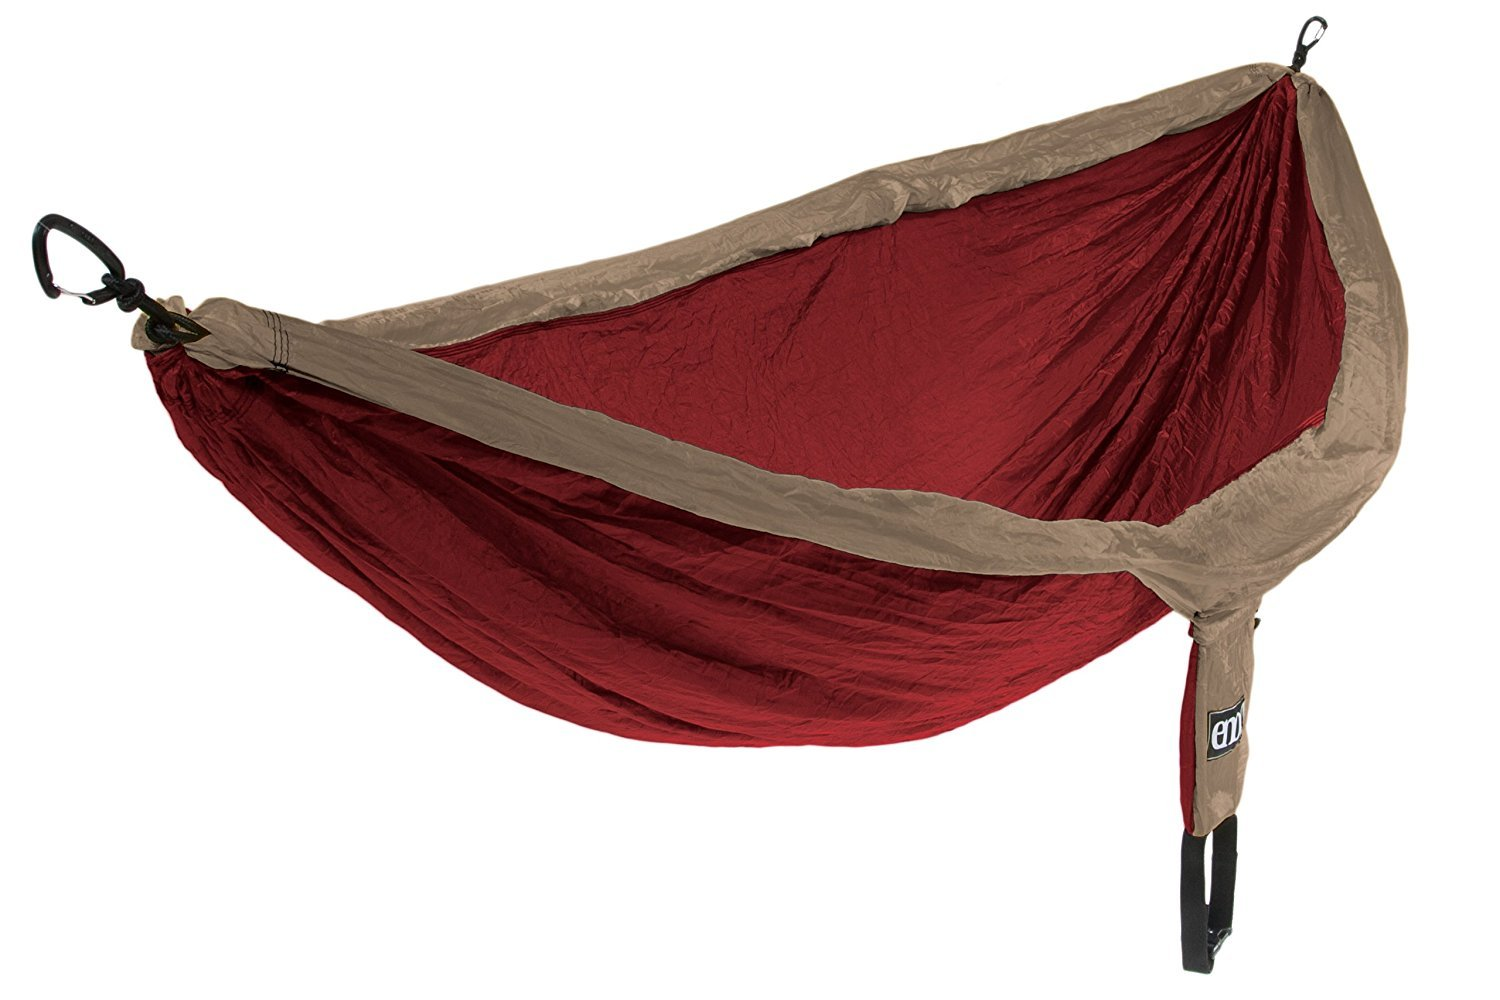 Eagles Nest Outfitters - DoubleNest Hammock with Insect Shield Treatment Khaki/Maroon [並行輸入品] B077QH37CQ